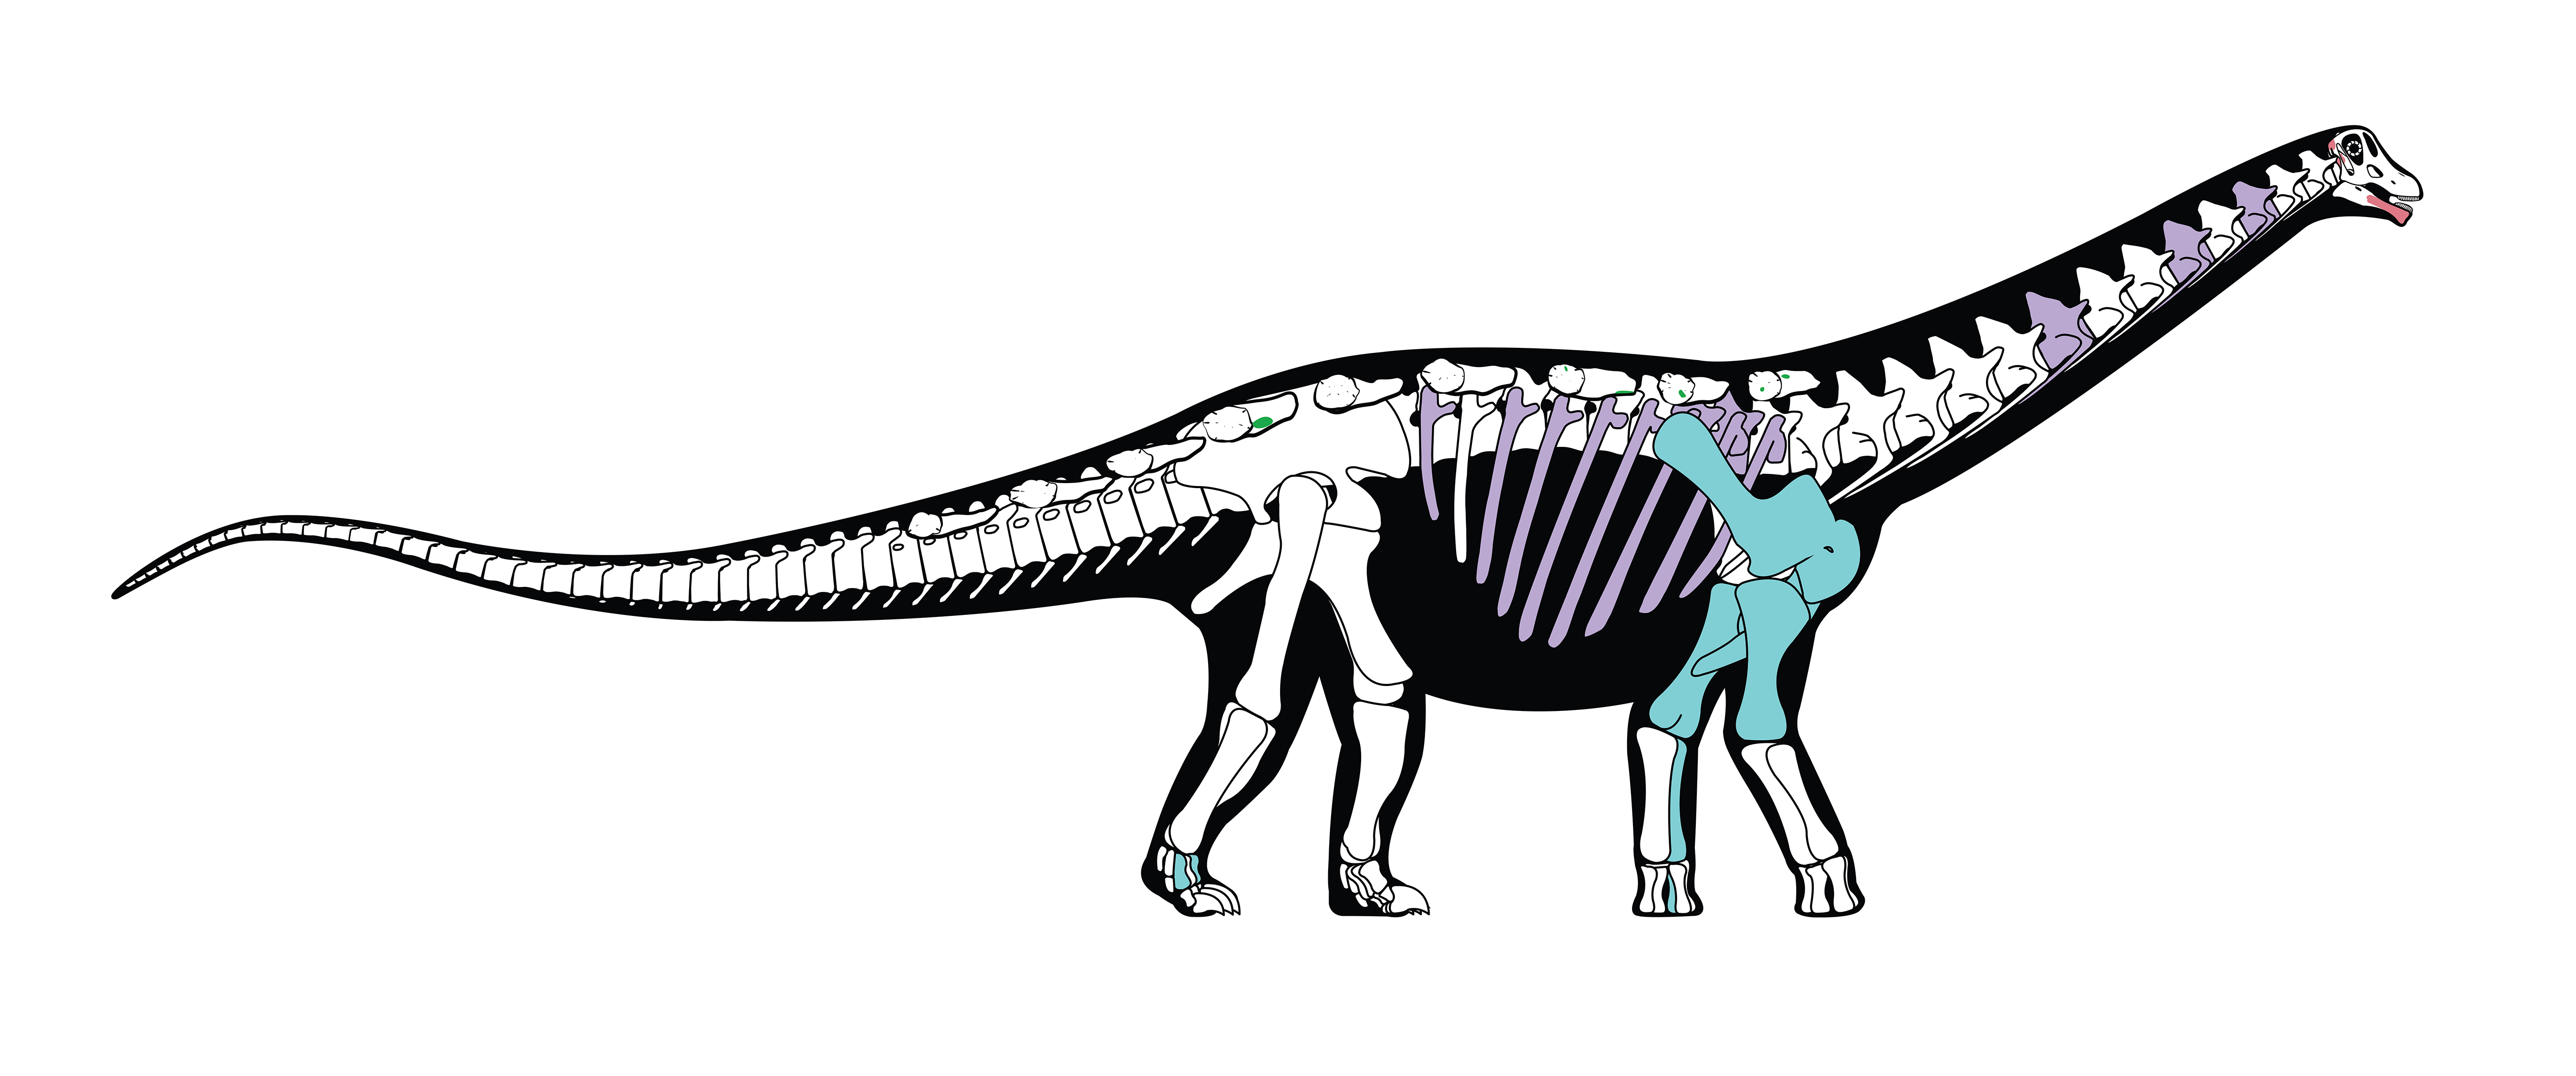 Skeletal reconstruction of the new titanosaurian dinosaur Mansourasaurus found in Egypt. Bones shown in color are those that are preserved in the original fossil; other bones are based on those of closely related dinosaurs. (Credit: Andrew McAfee/Carnegie Museum of Natural History)